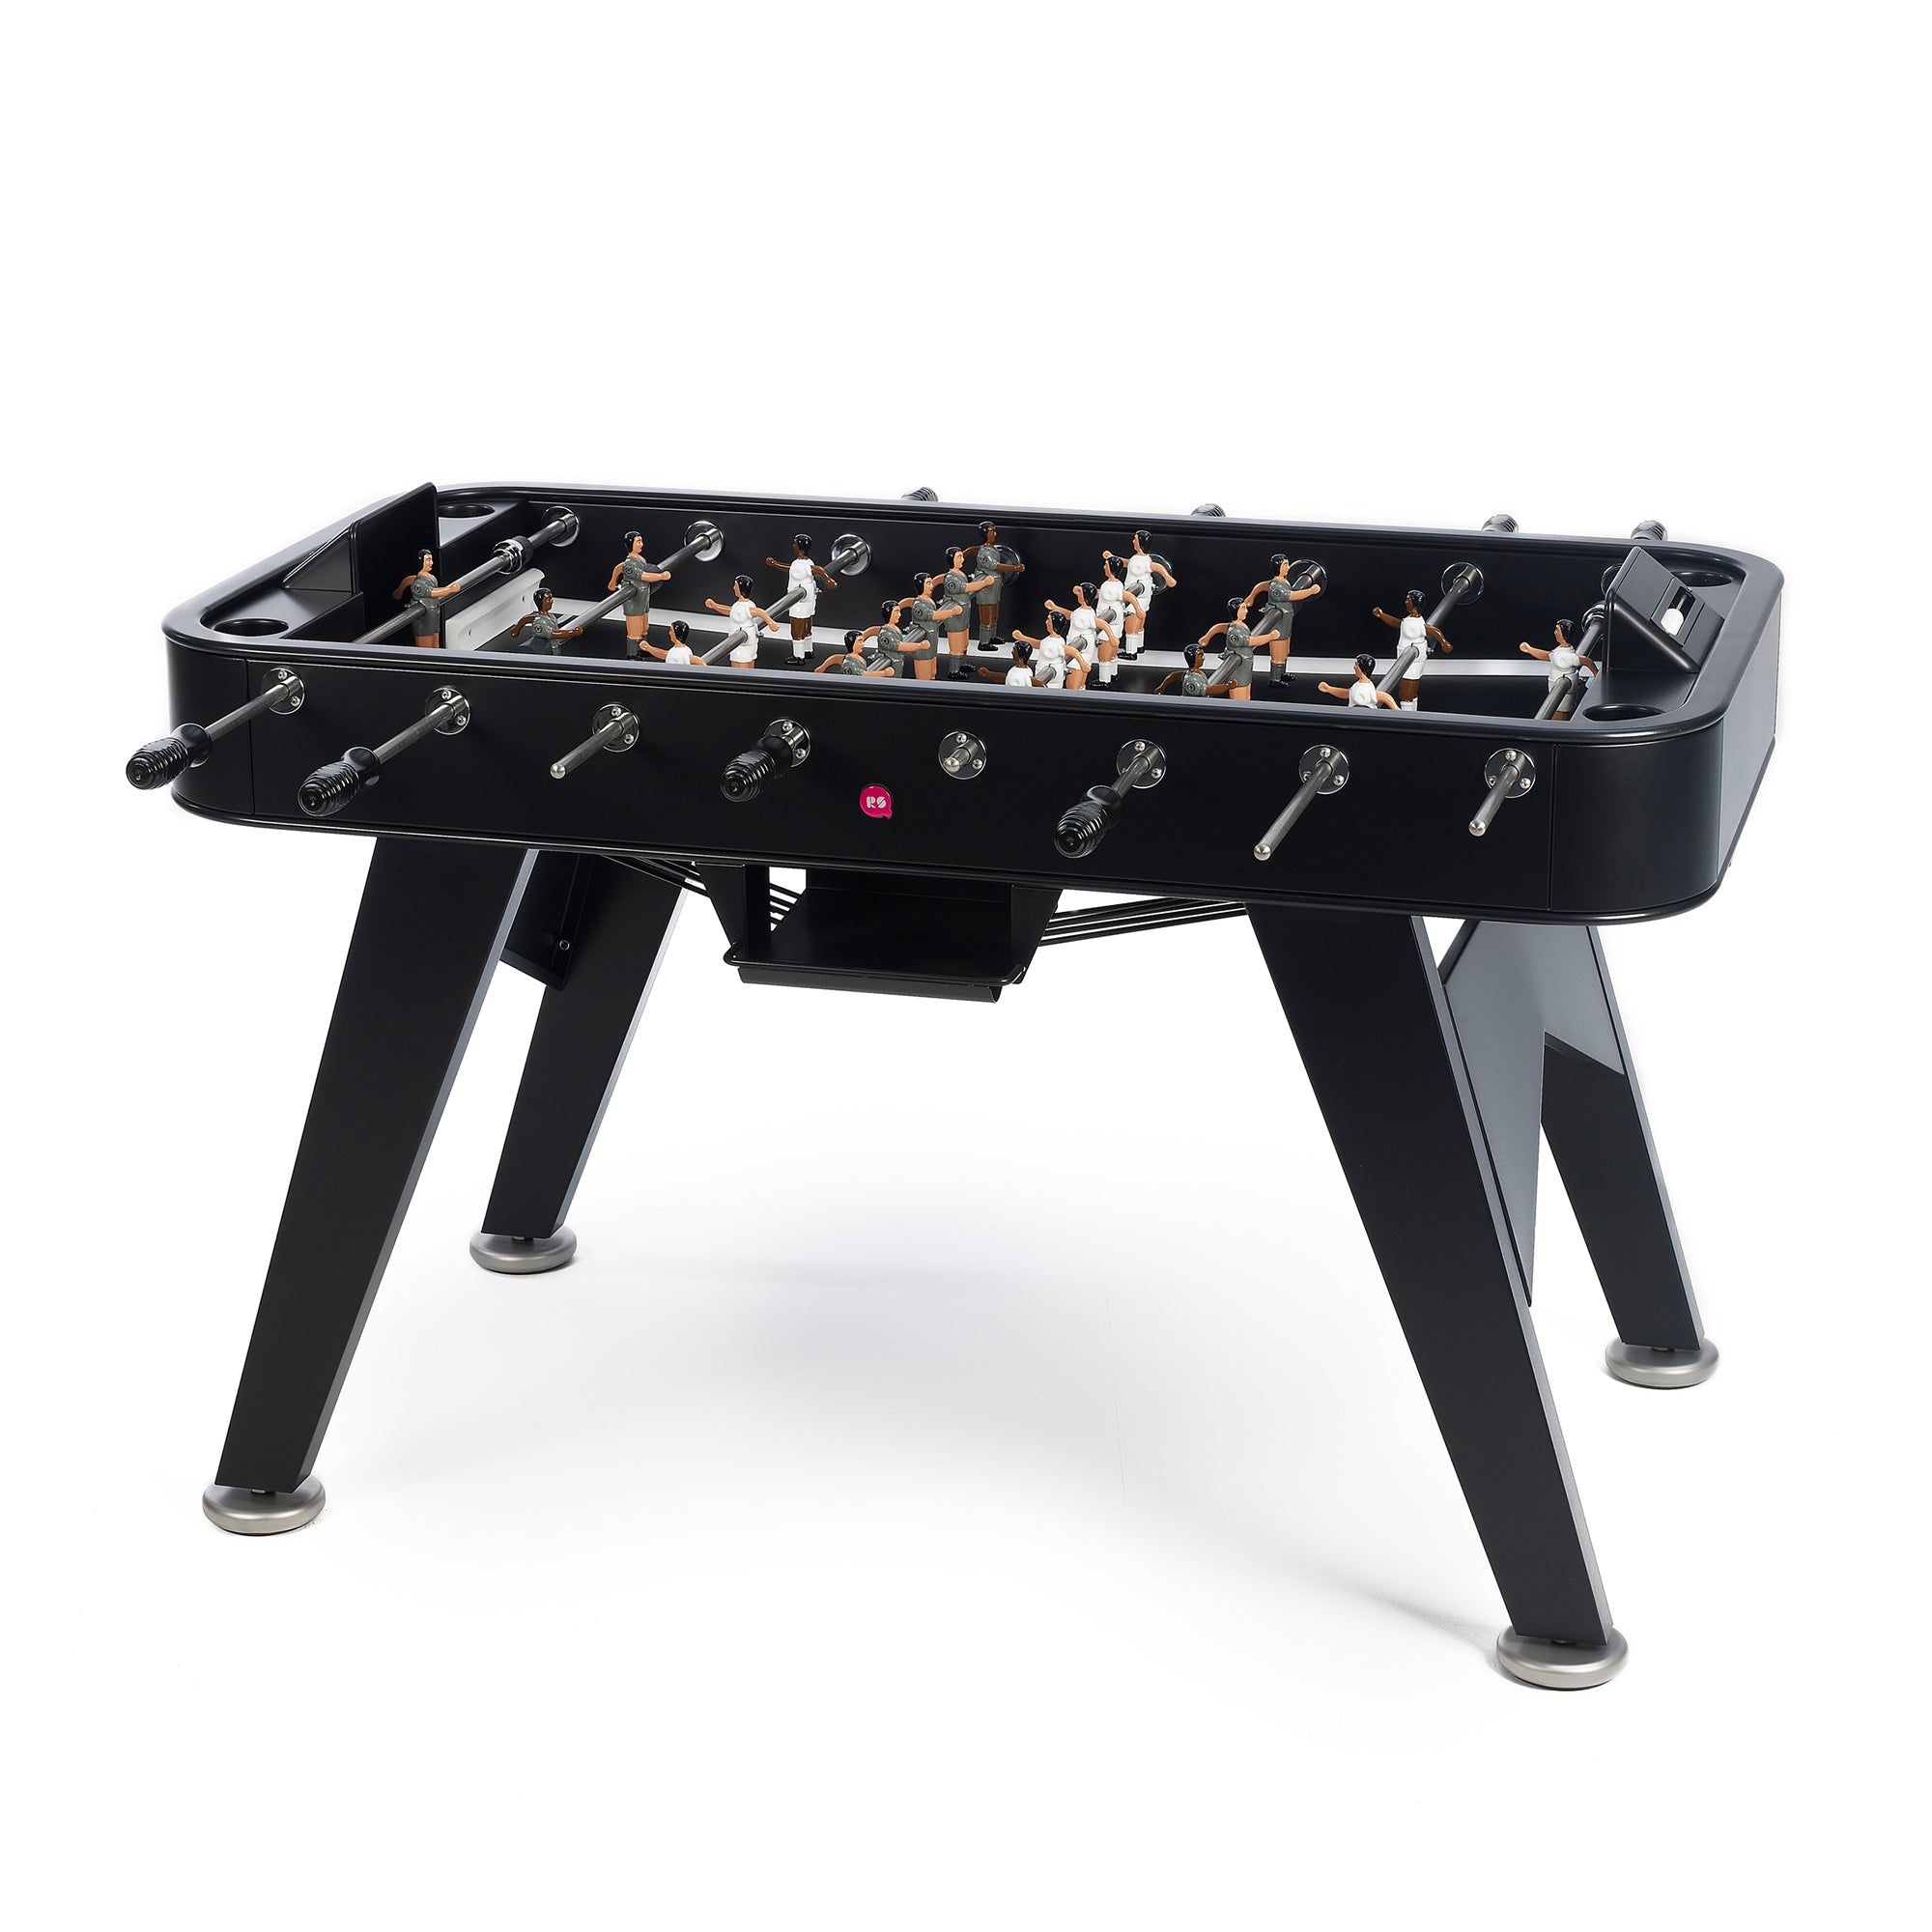 RS2 Foosball Table Outdoor: Black